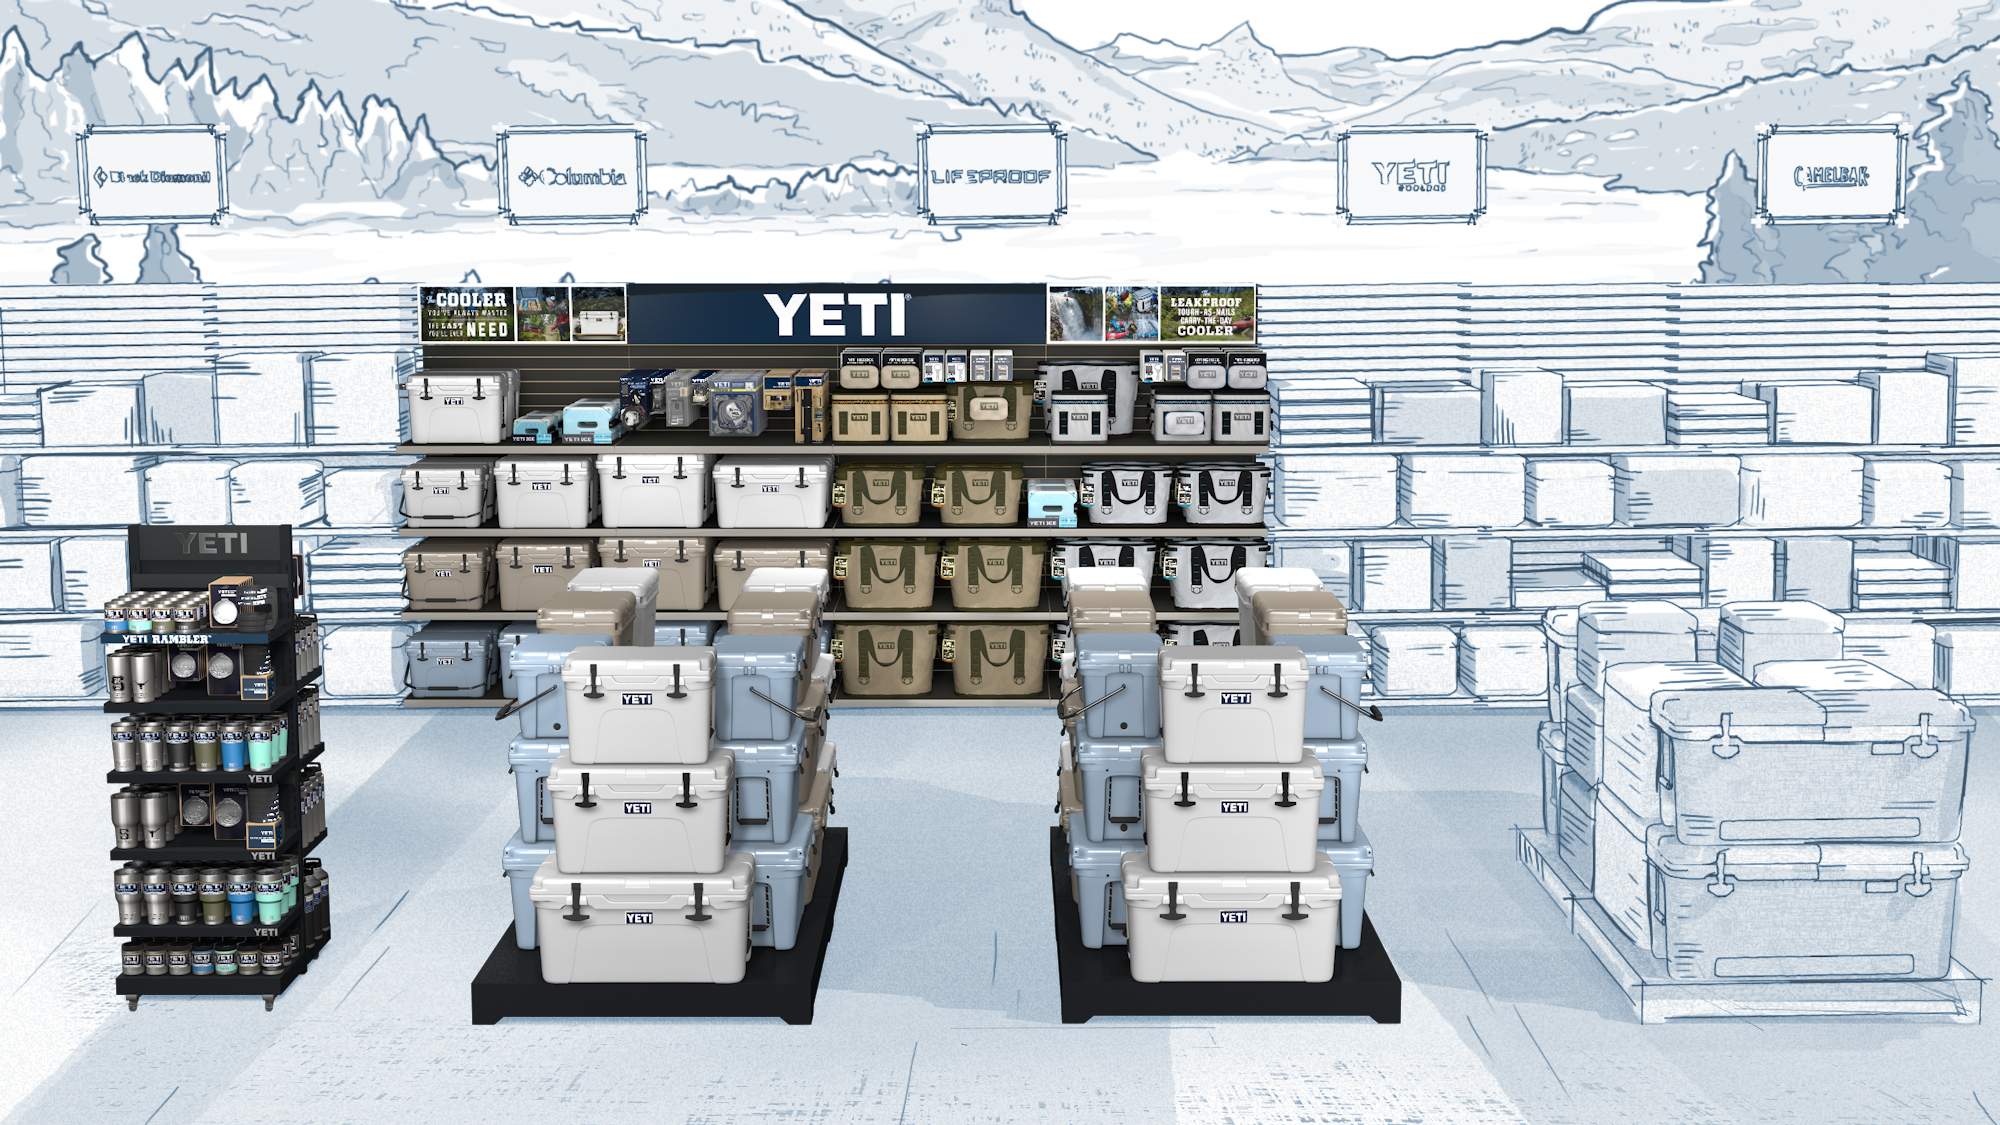 Yeti Bass Pro Shop Environment